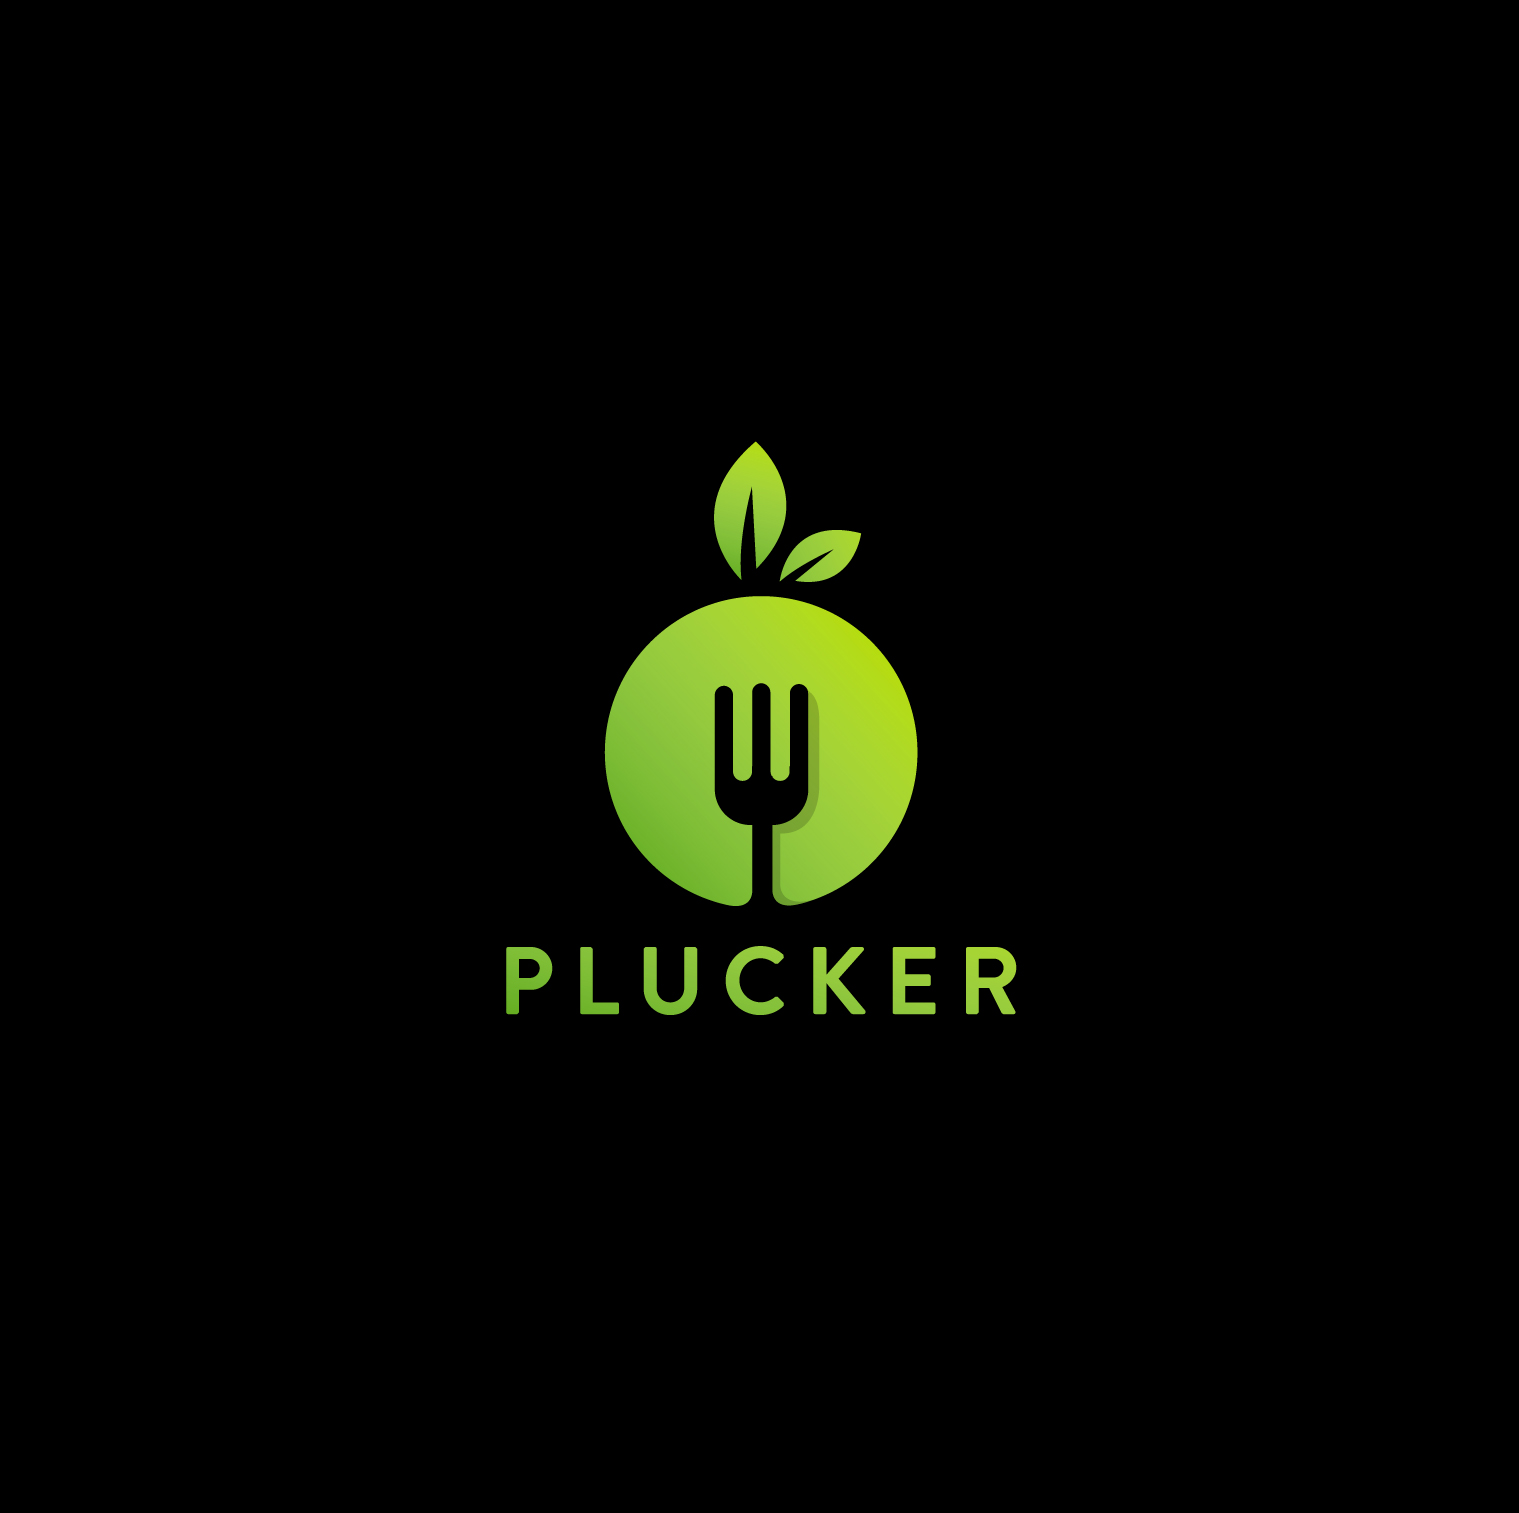 Plucker LLC Becomes the First Black-owned Food Delivery Service in New York